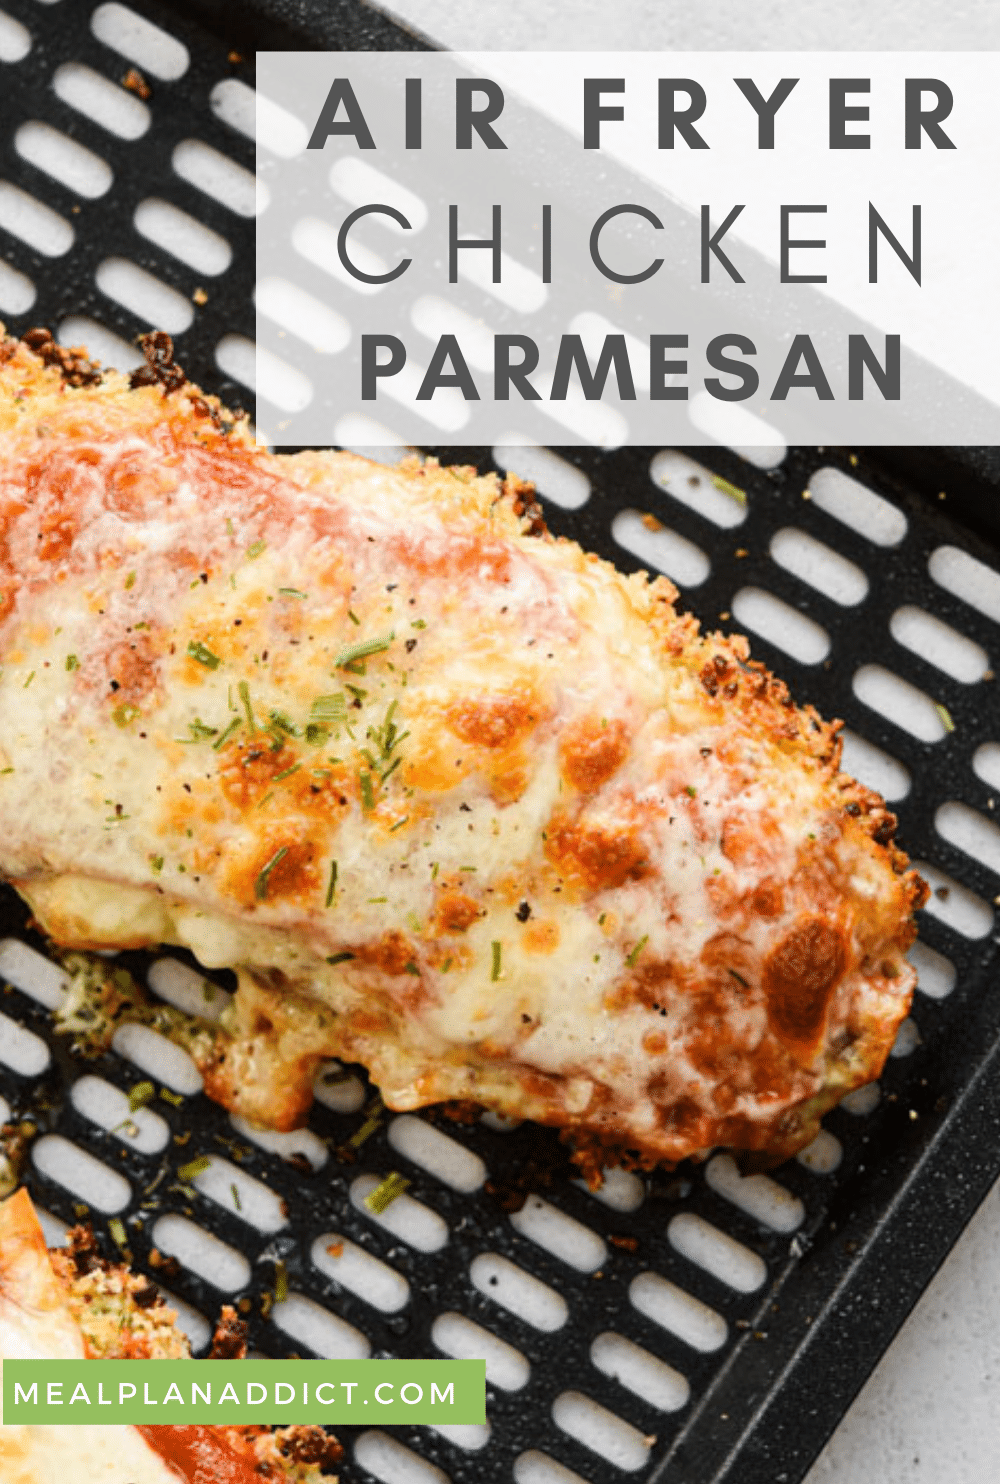 Chicken parm pin for Pinterest